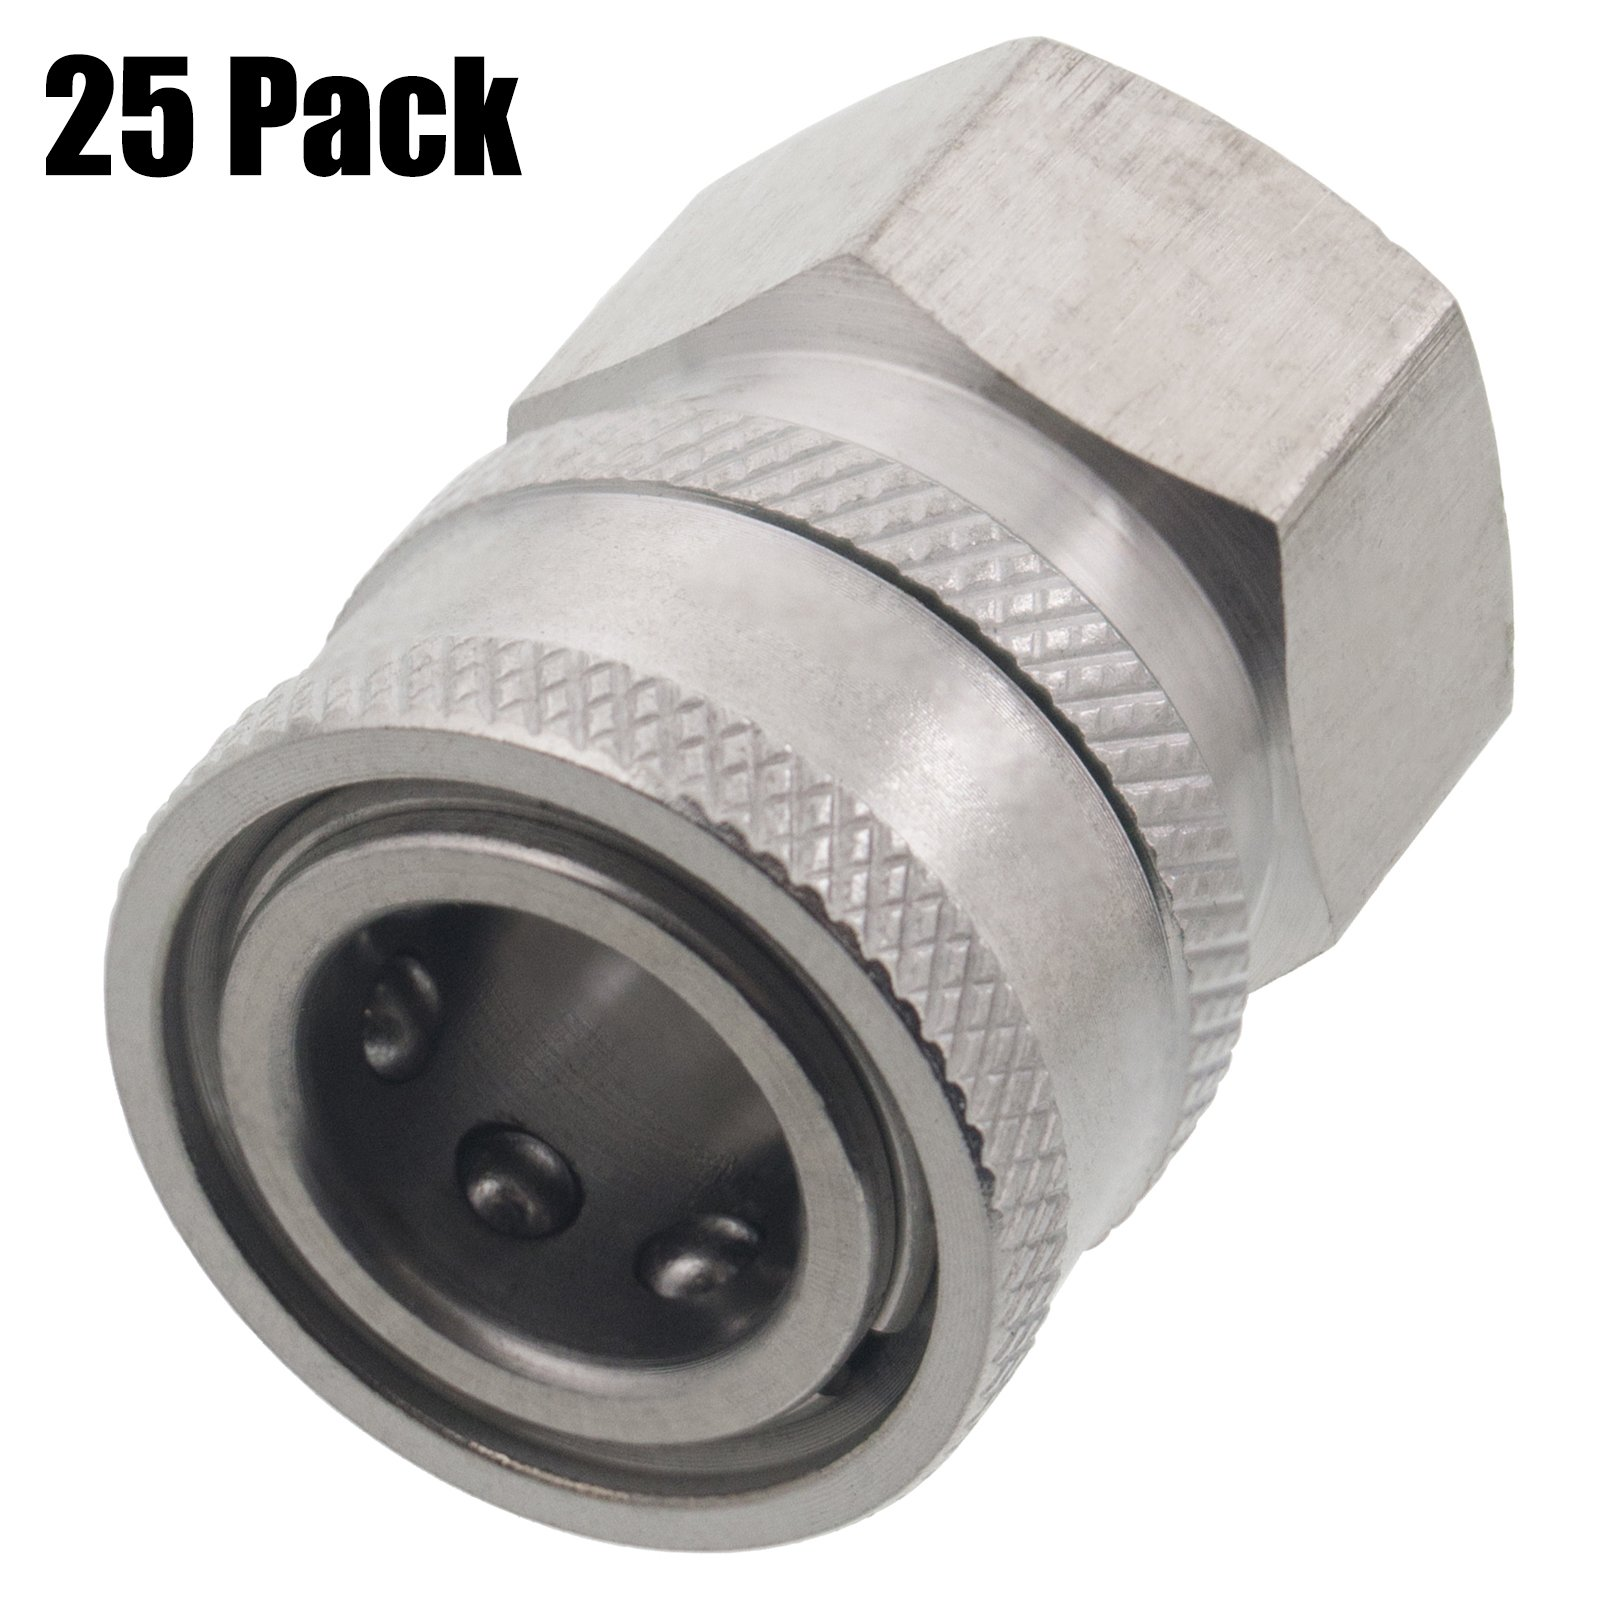 Erie Tools 25 3/8'' FPT Female Stainless Steel Socket Quick Connect Coupler 5000 PSI 10 GPM for Pressure Washer Nozzle Gun Hose Wand